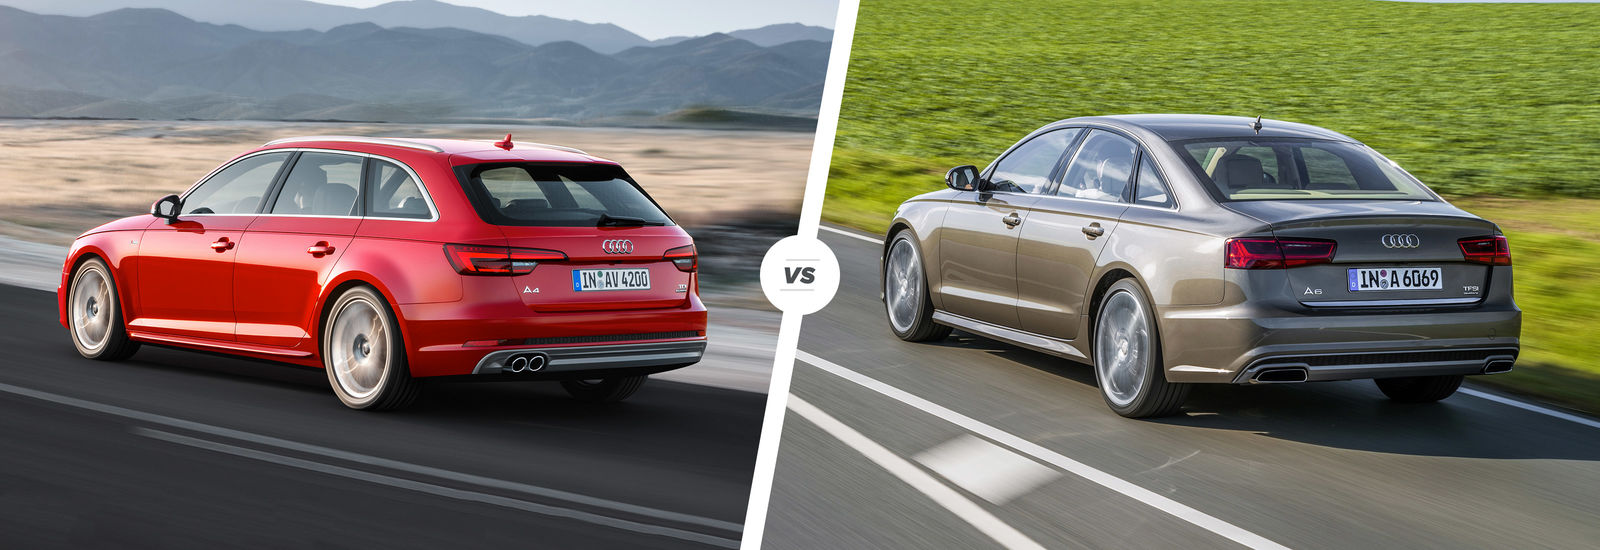 Audi A4 vs A6 side-by-side comparison | carwow